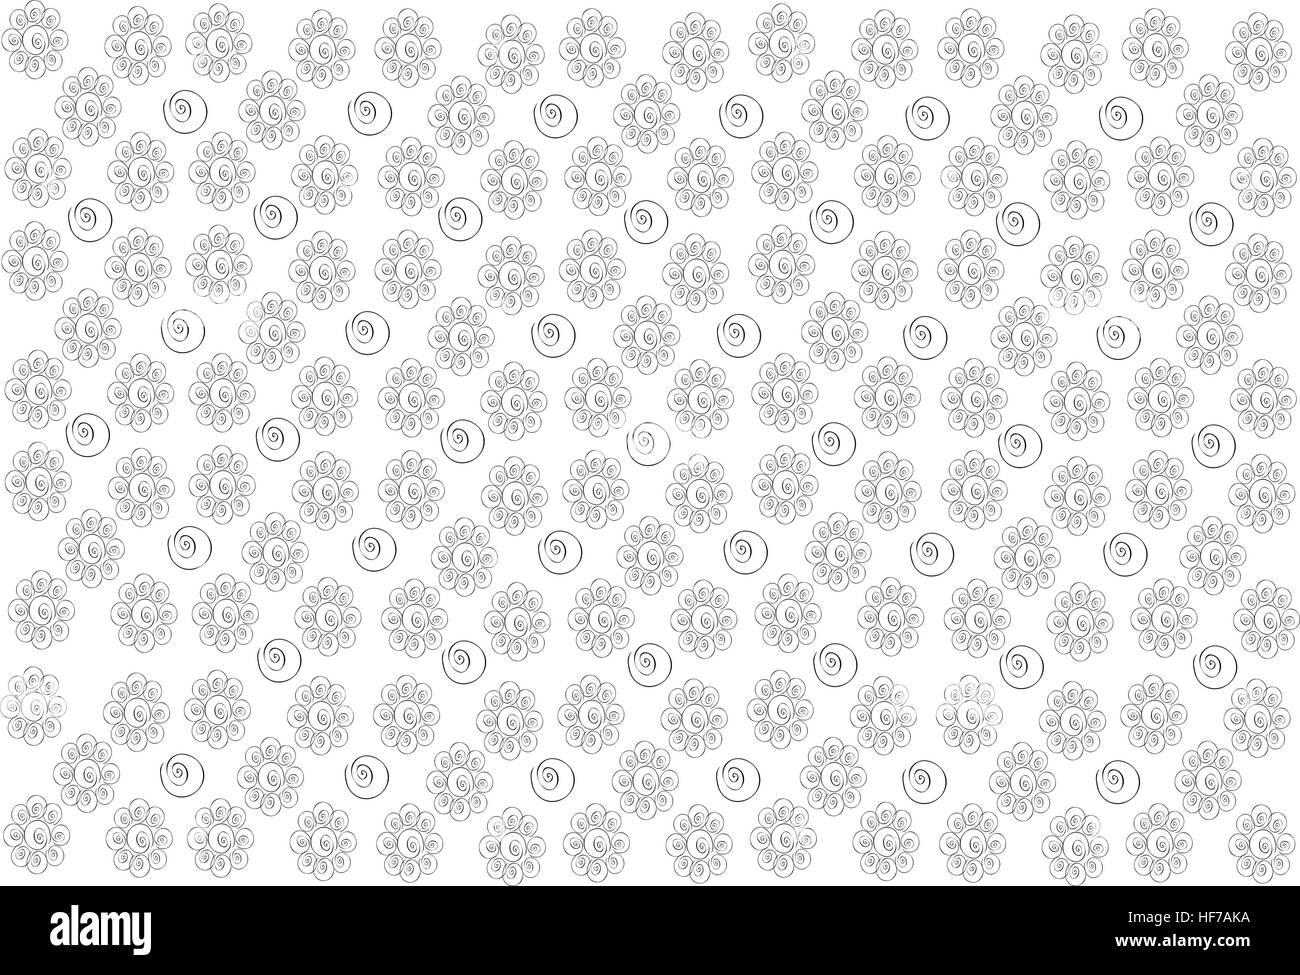 Thai Pattern Illustration De Belle Texture Papier Peint Fond Blanc